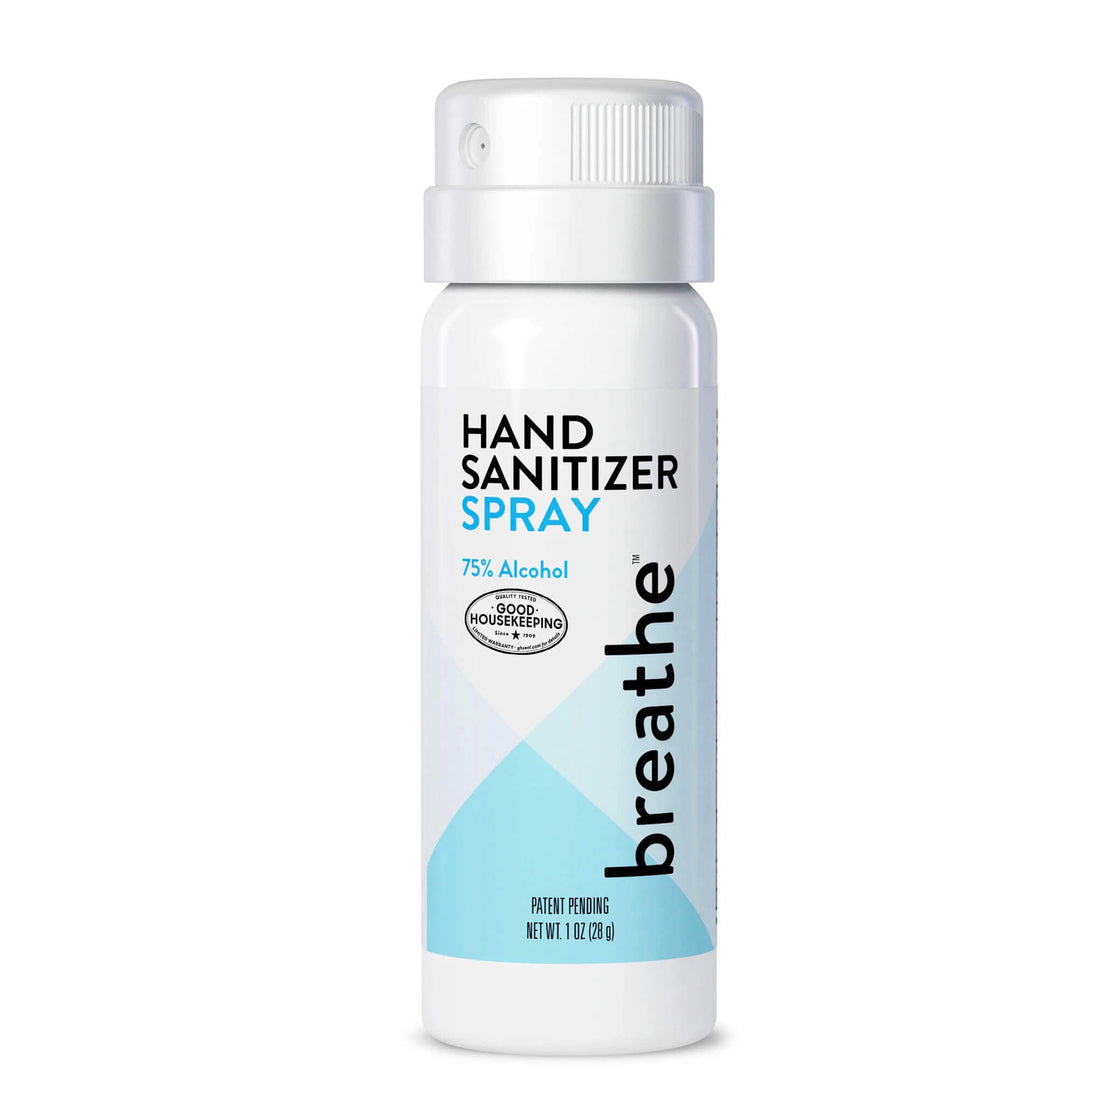 Hand Sanitizer Spray - 1 oz